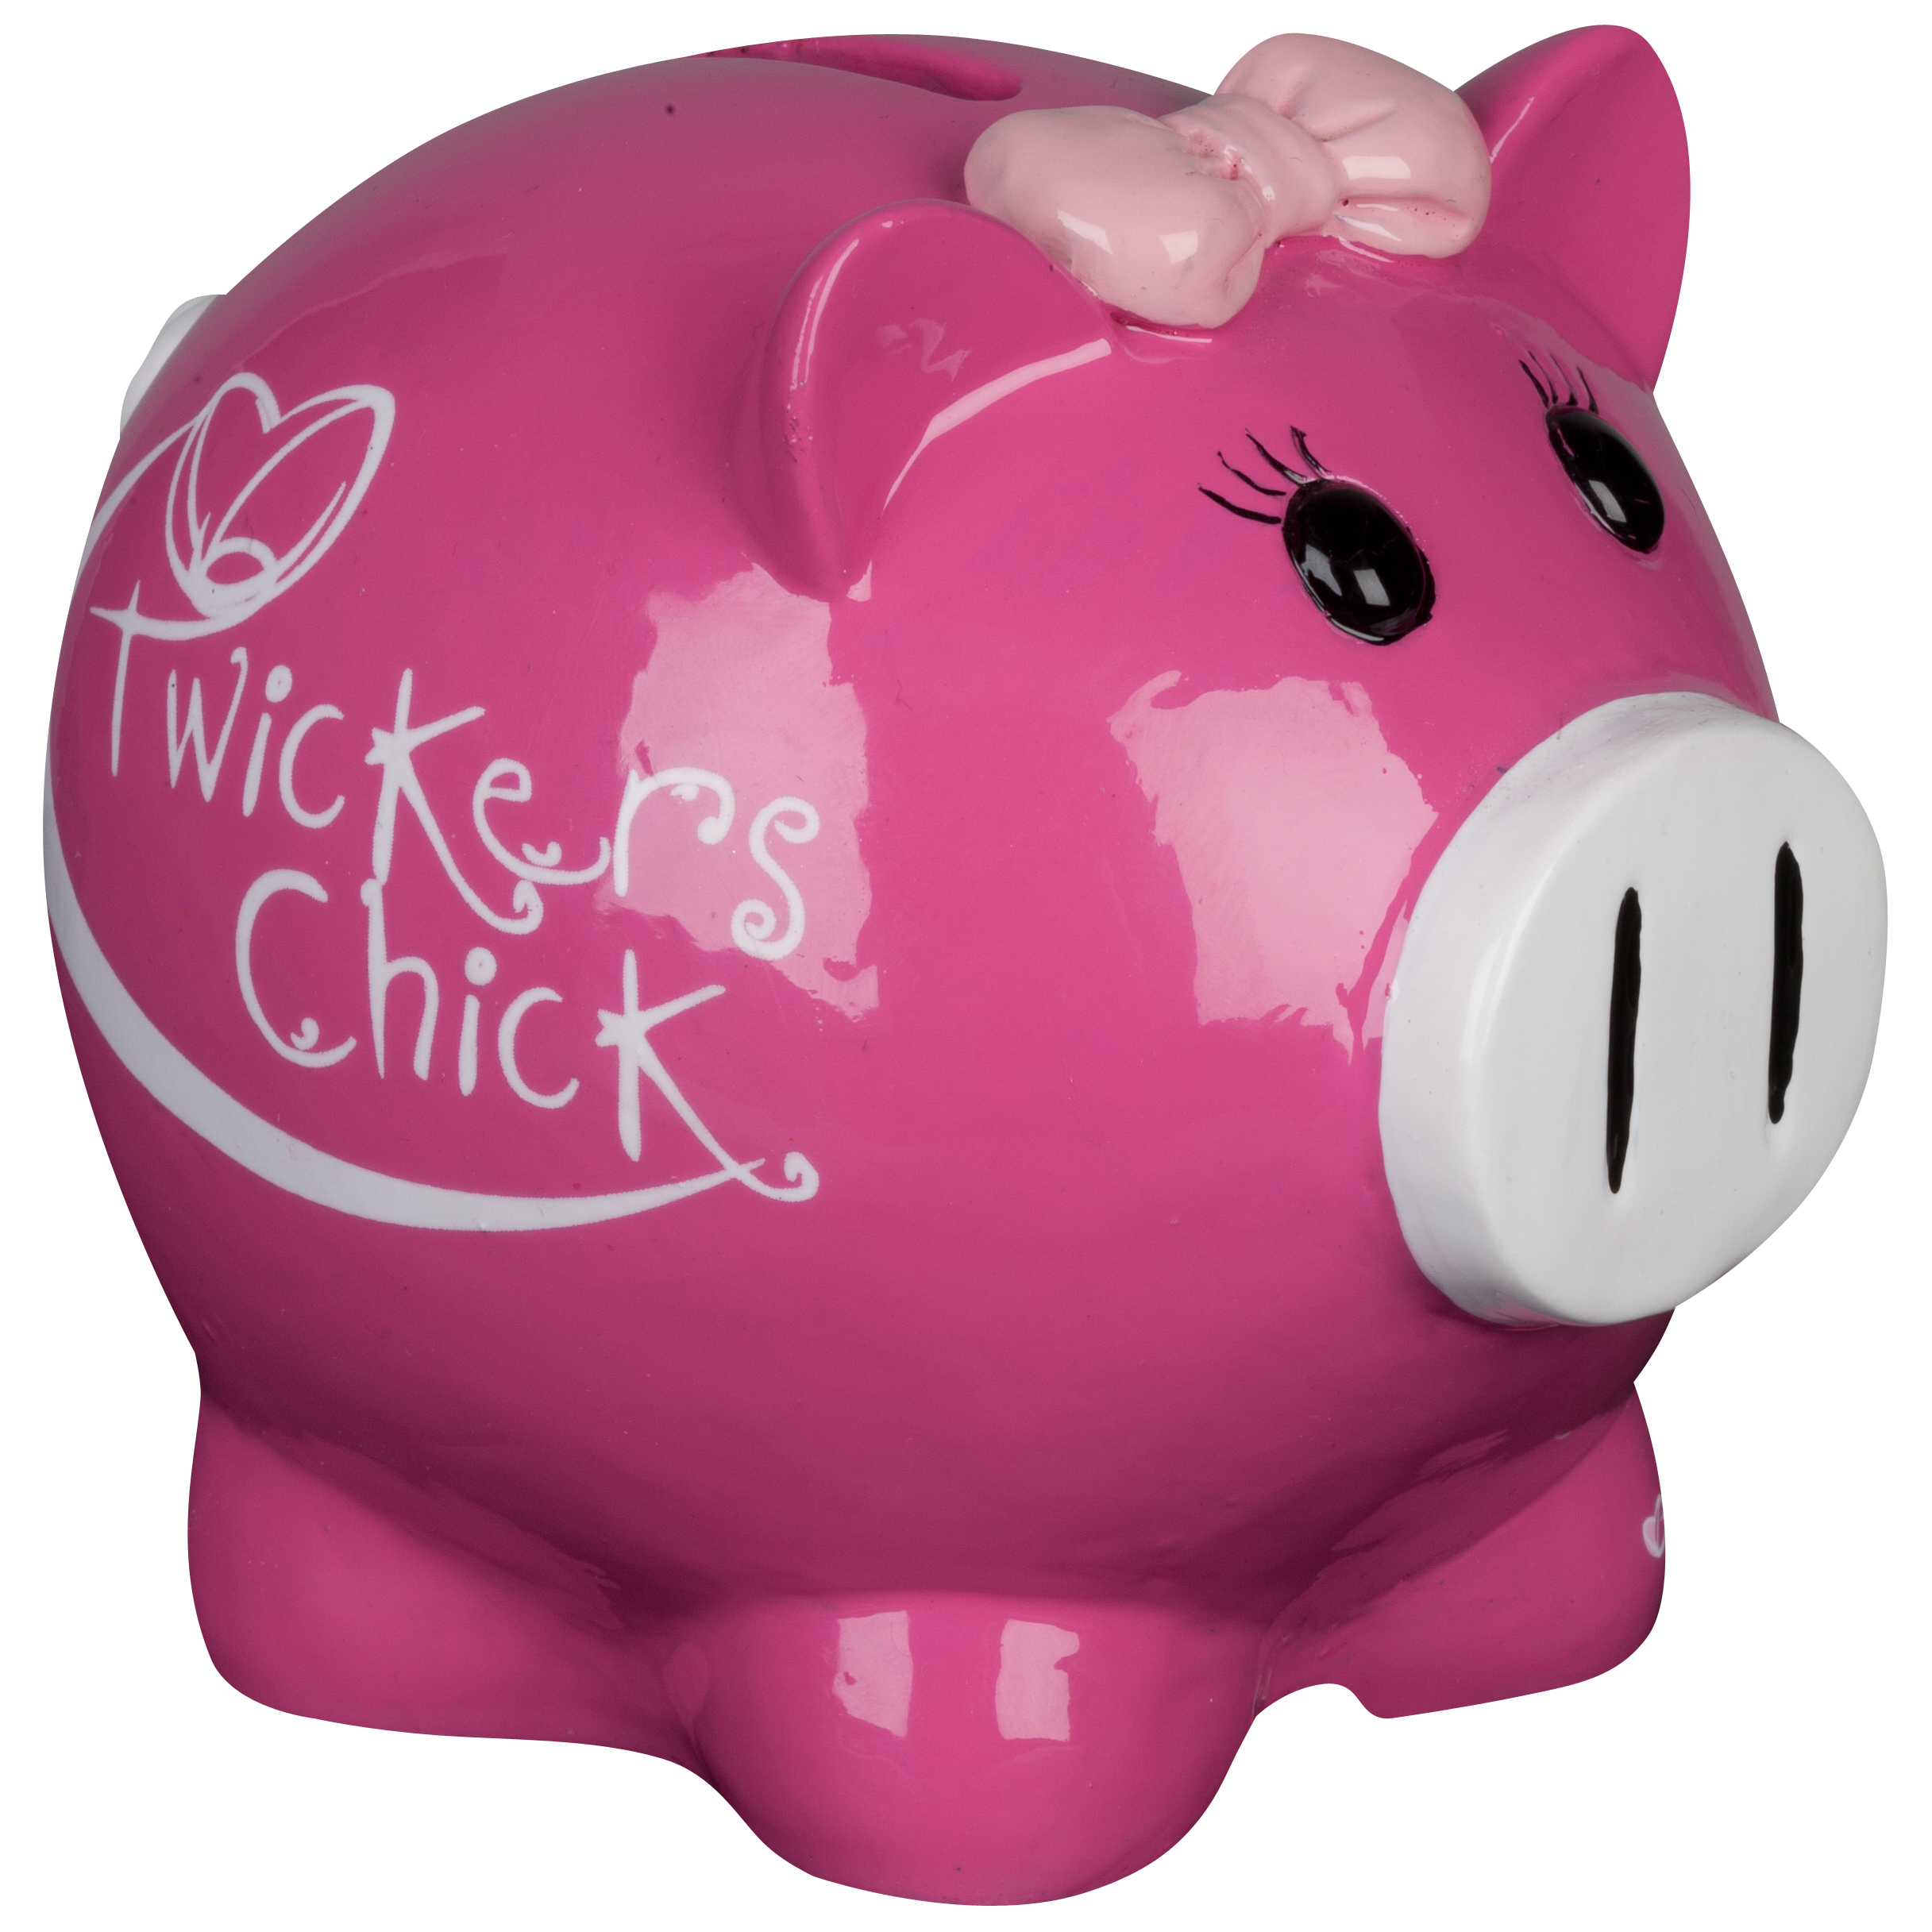 England Rugby Twickers Chick Piggy Bank